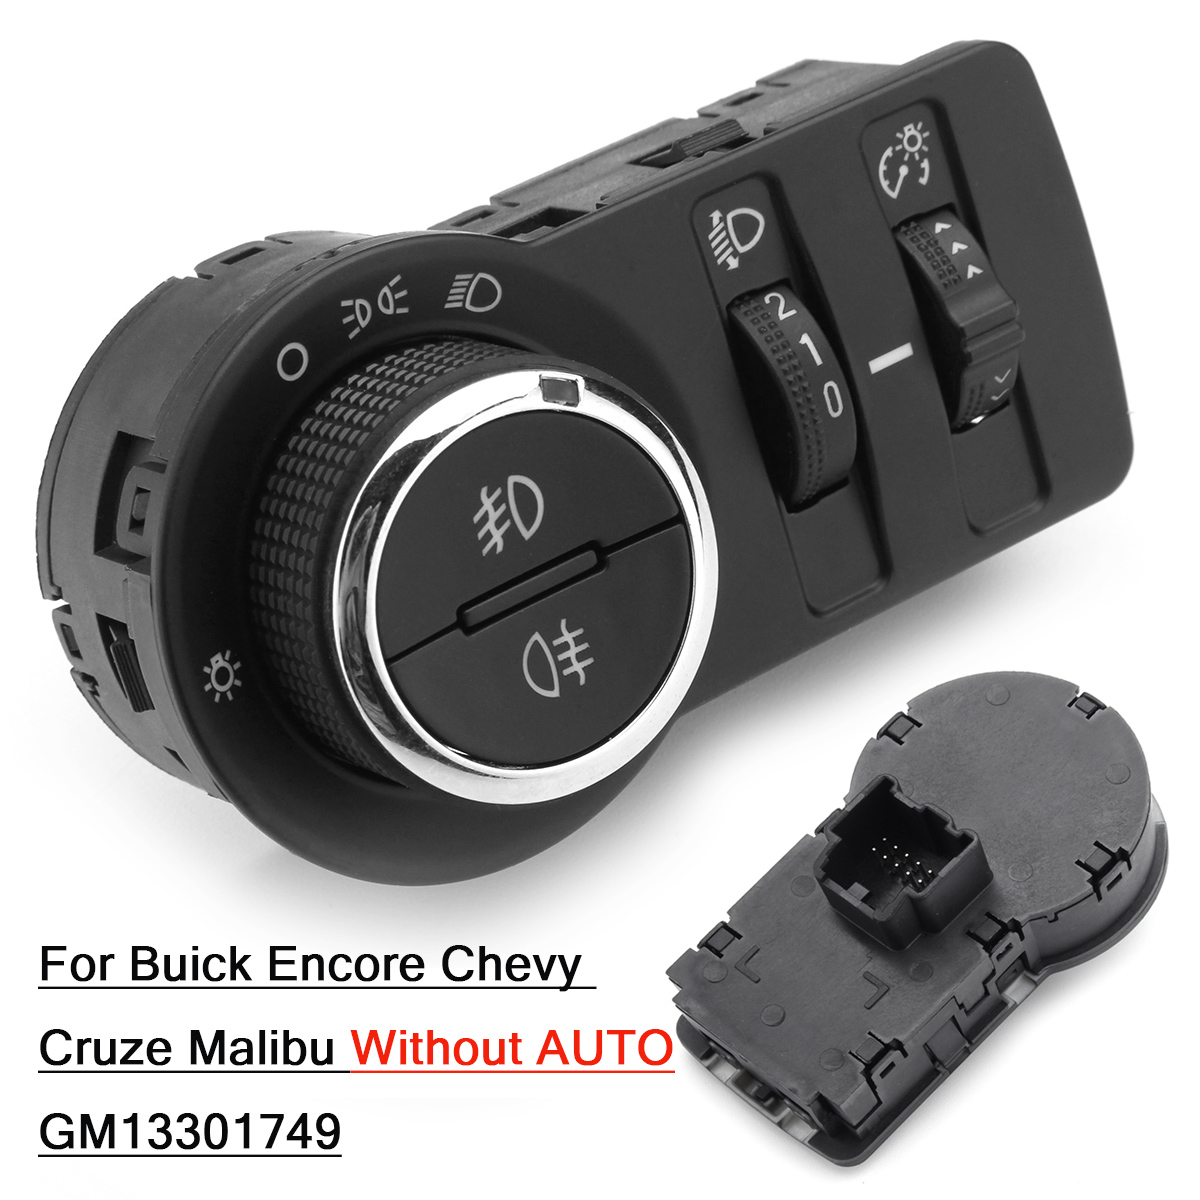 GM13301749 Car Fog Lamp Headlight Switch Button Without AUTO for Chevrolet Cruze J300 1.4 1.6 1.7 Chevy-in Car Switches & Relays from Automobiles & Motorcycles